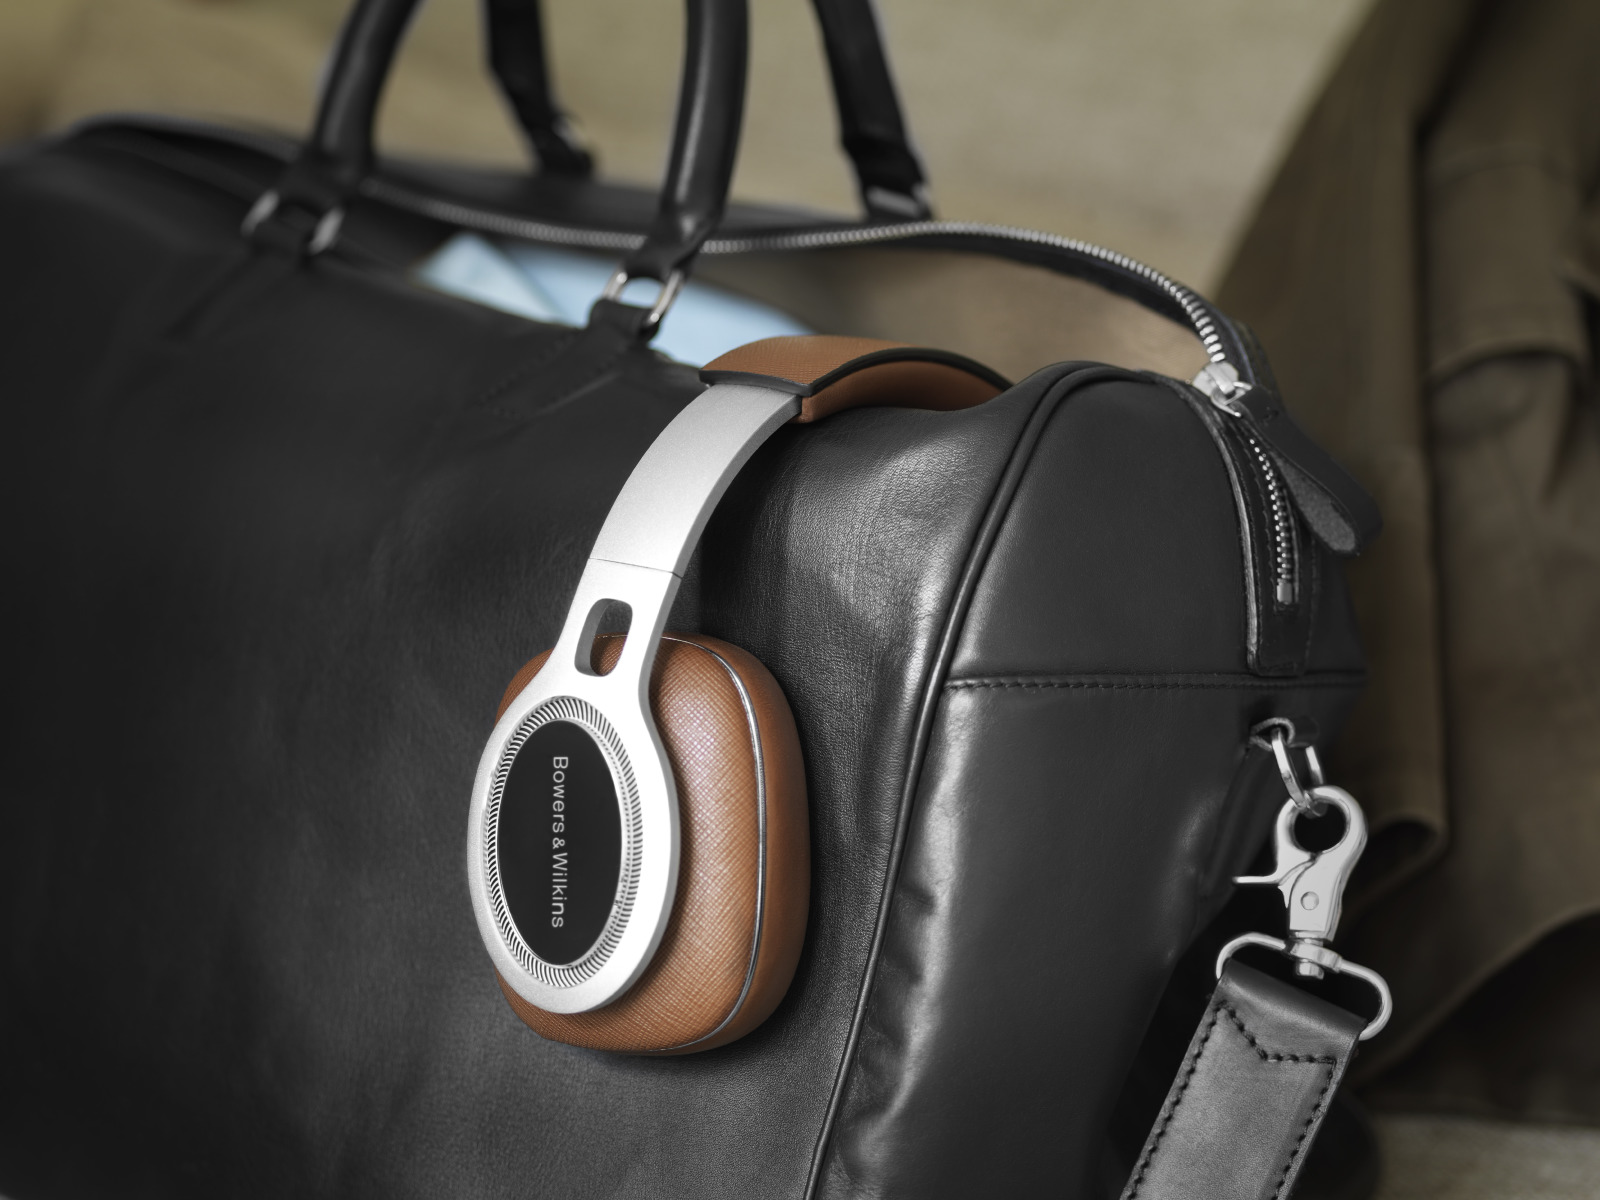 b&w p9 headphone stereohouse koptelefoon